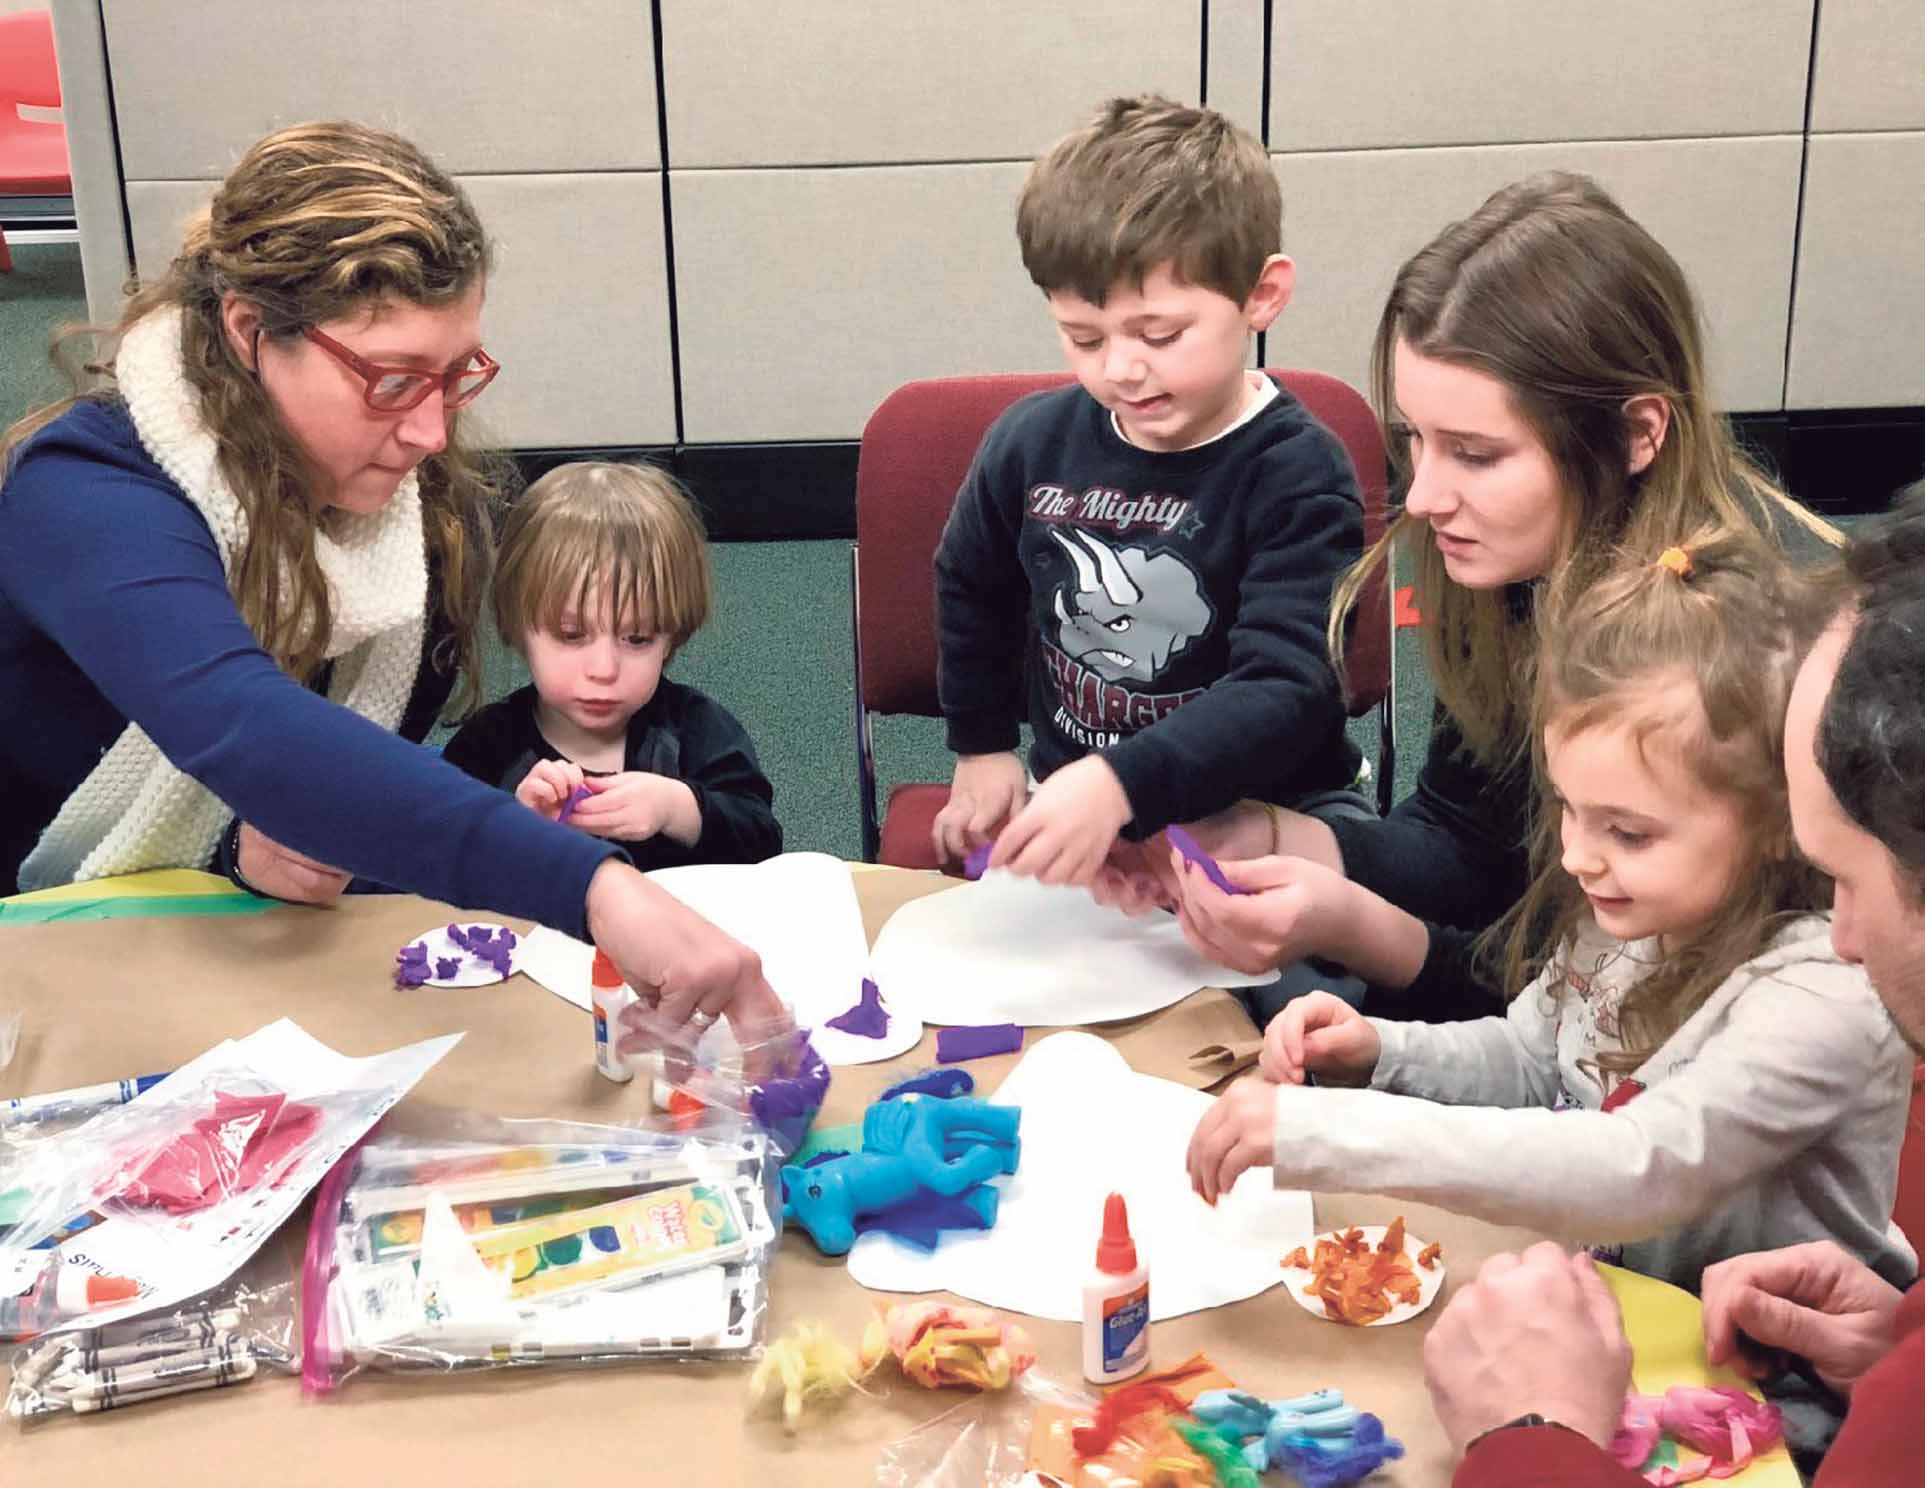 Integrated Play Groups Help Children >> Child Program Joins Medical Center Plainview Old Bethpage Herald